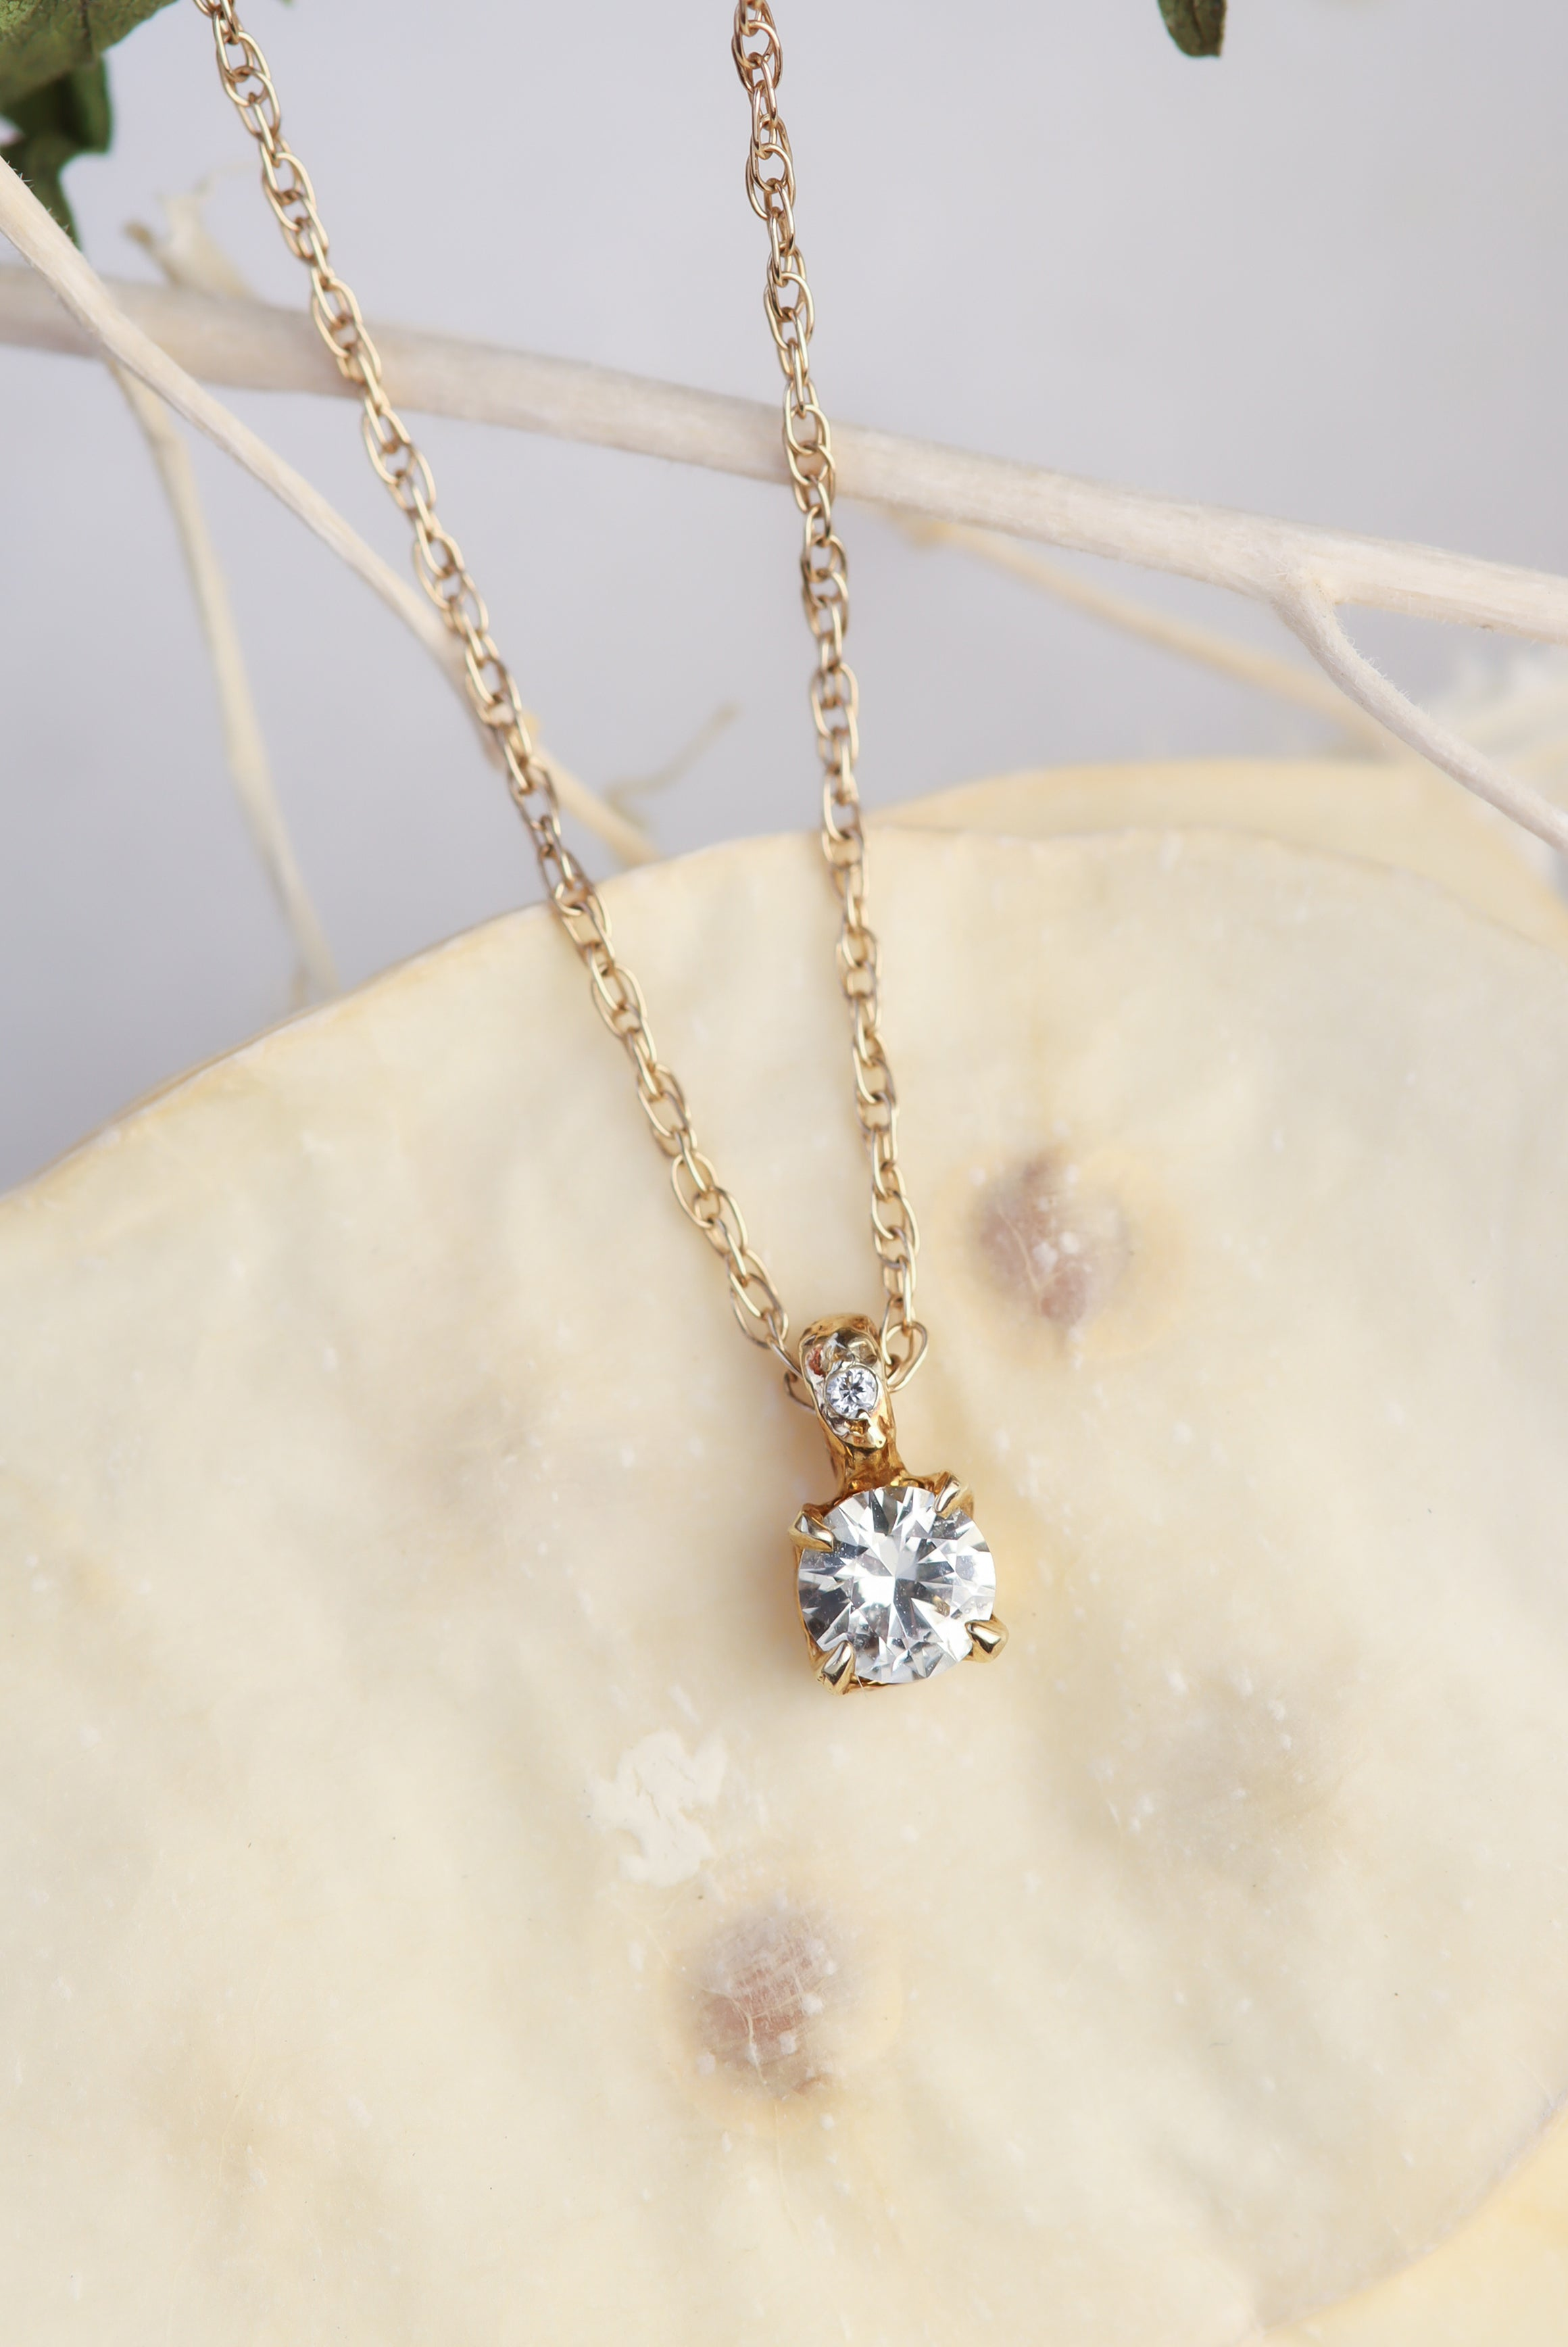 september-birthstone-sapphire-birthday-gifts-solid-gold-white-sapphire-pendant-necklace.jpg